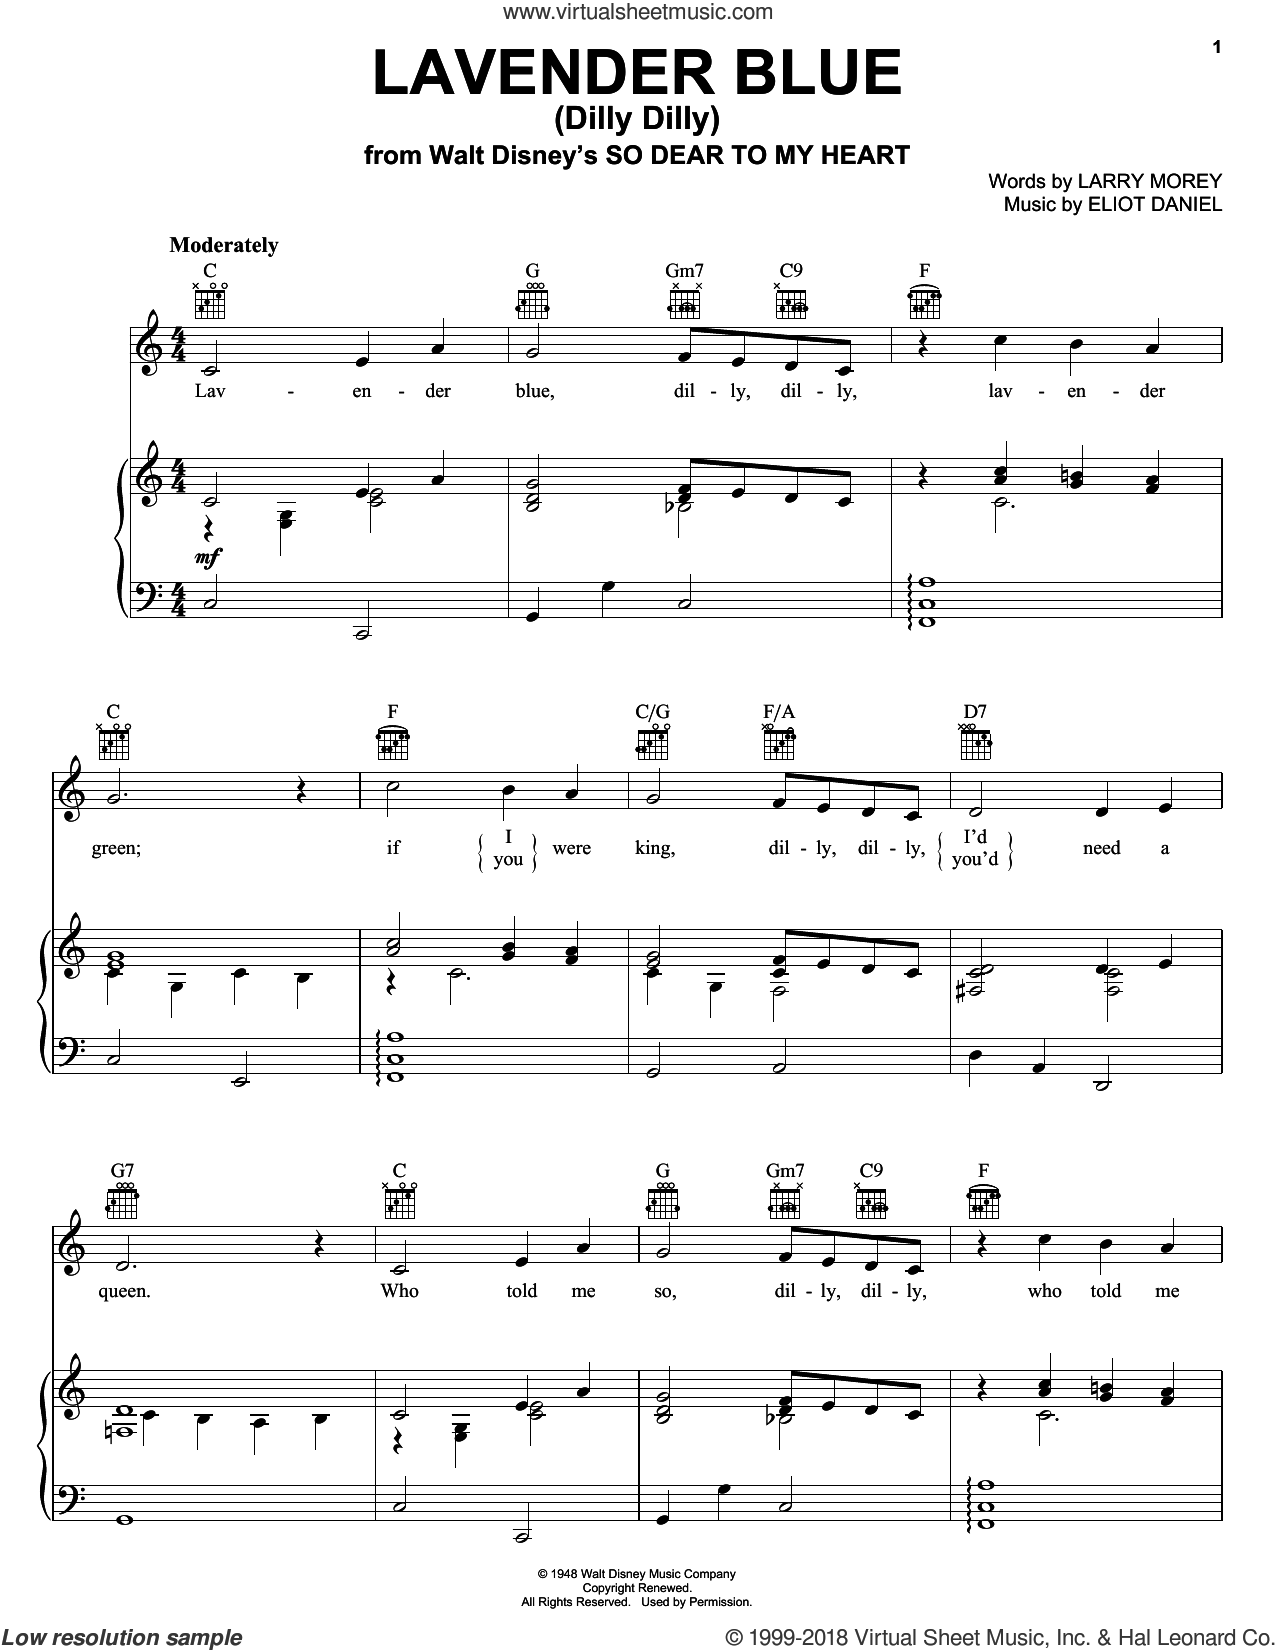 Lavender Blue (Dilly Dilly) sheet music for voice, piano or guitar by Burl Ives, Eliot Daniel and Larry Morey. Score Image Preview.